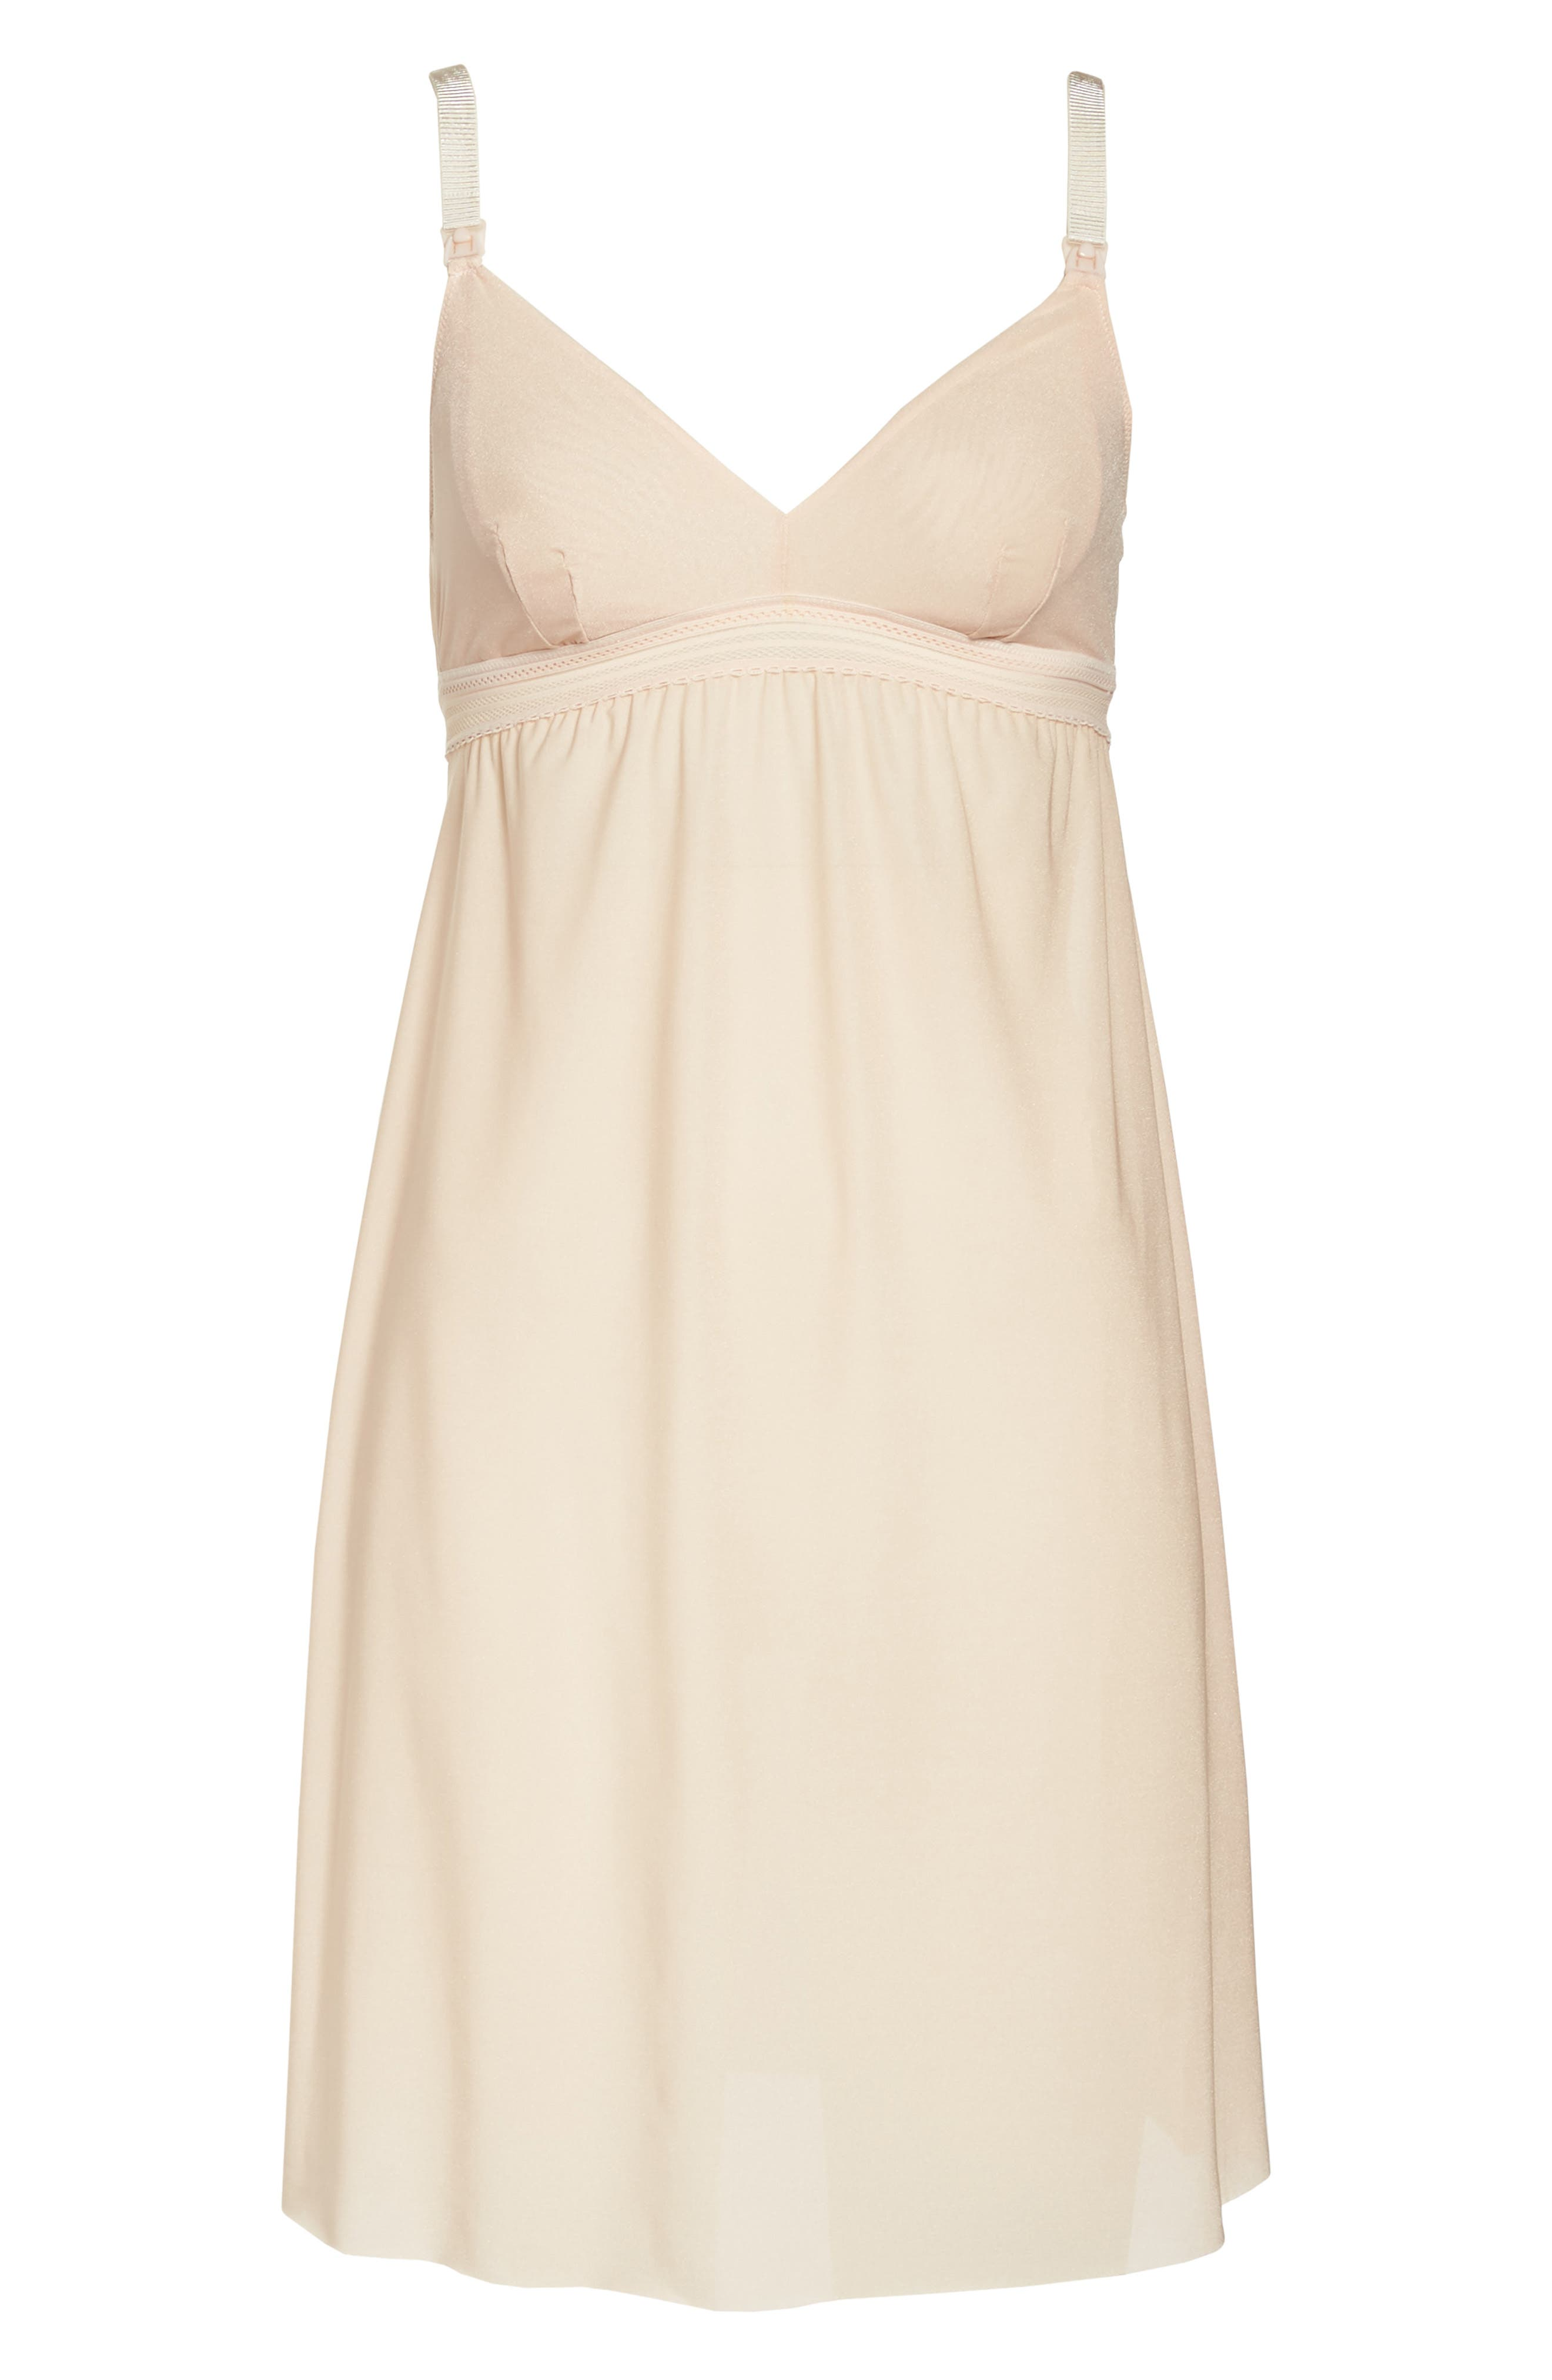 Laced In Aire Chemise,                             Alternate thumbnail 4, color,                             Nude Rose